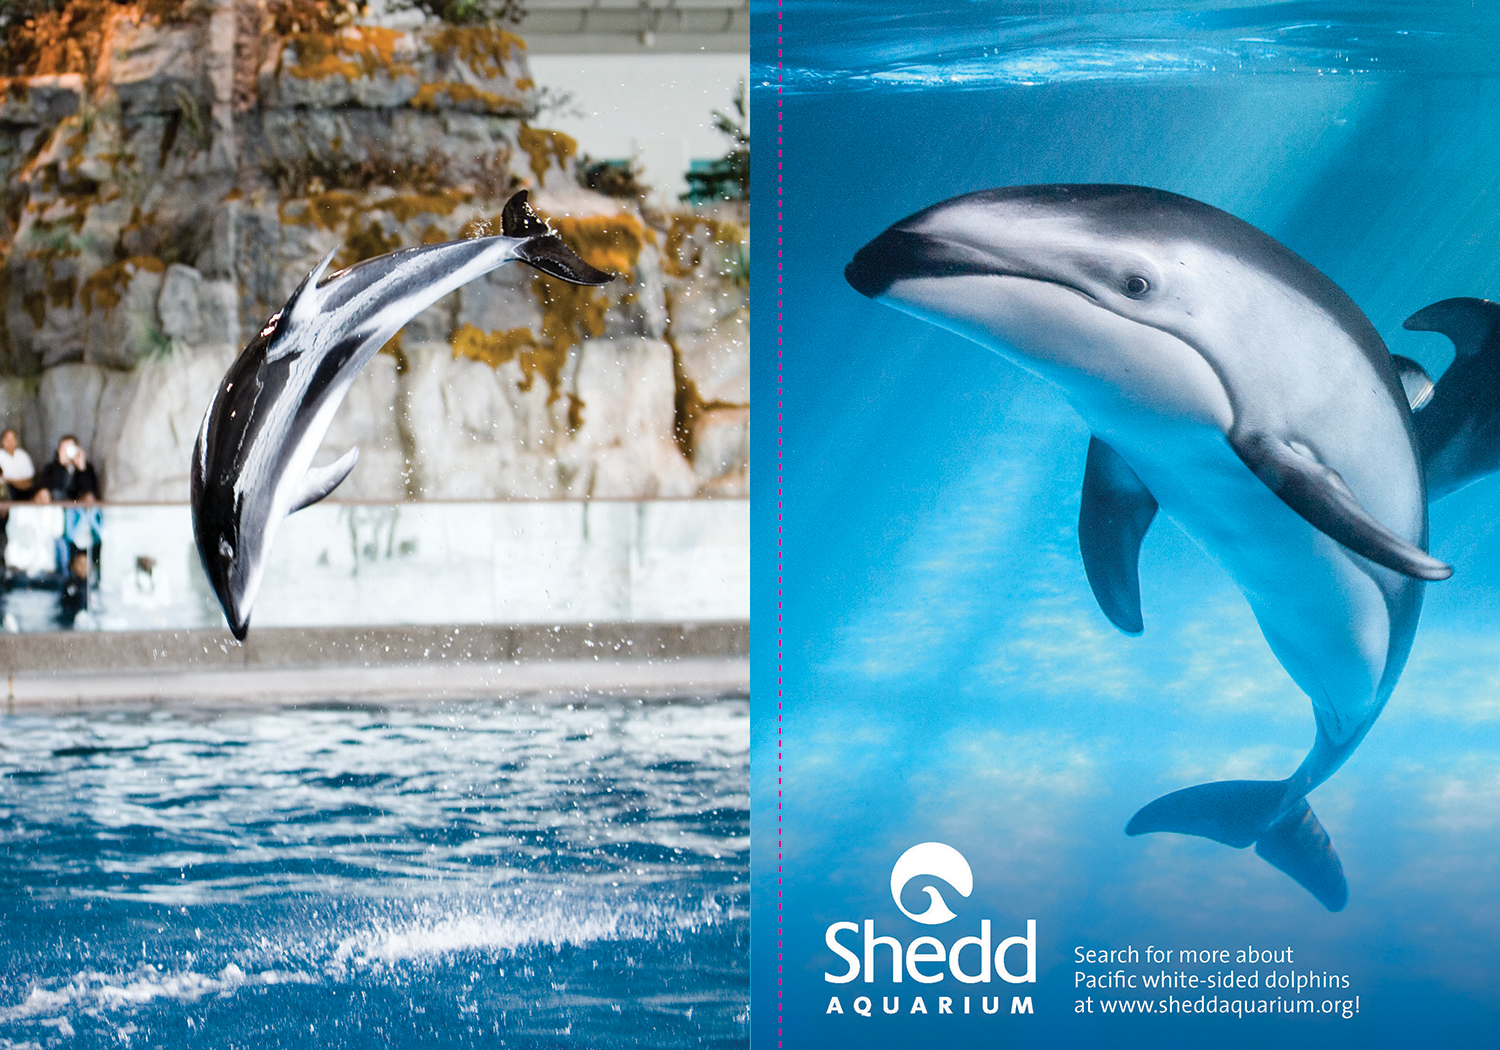 A two page spread featuring a photo of dolphins jumping to the left, and a dolphin peering at the camera underwater on the right.